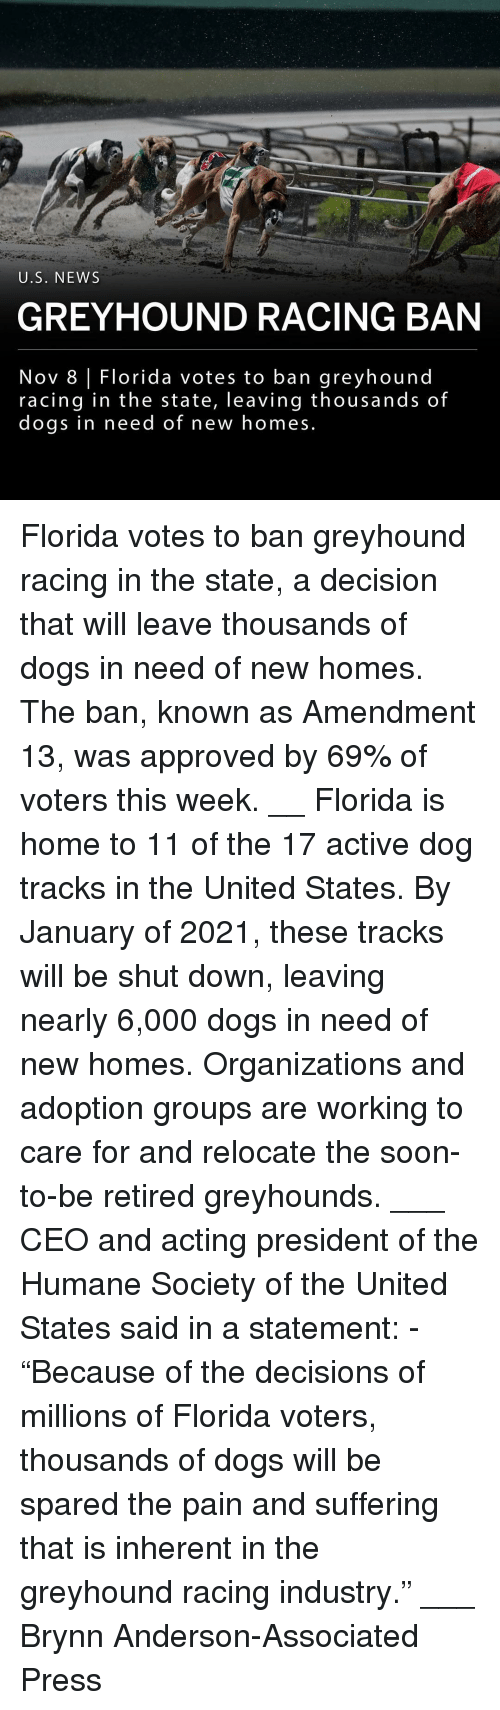 """Dogs, Memes, and News: U.S. NEWS  GREYHOUND RACING BAN  Nov 8 Florida votes to ban greyhound  racing in the state, leaving thousands of  doqs in need of new homes Florida votes to ban greyhound racing in the state, a decision that will leave thousands of dogs in need of new homes. The ban, known as Amendment 13, was approved by 69% of voters this week. __ Florida is home to 11 of the 17 active dog tracks in the United States. By January of 2021, these tracks will be shut down, leaving nearly 6,000 dogs in need of new homes. Organizations and adoption groups are working to care for and relocate the soon-to-be retired greyhounds. ___ CEO and acting president of the Humane Society of the United States said in a statement: - """"Because of the decisions of millions of Florida voters, thousands of dogs will be spared the pain and suffering that is inherent in the greyhound racing industry."""" ___ Brynn Anderson-Associated Press"""